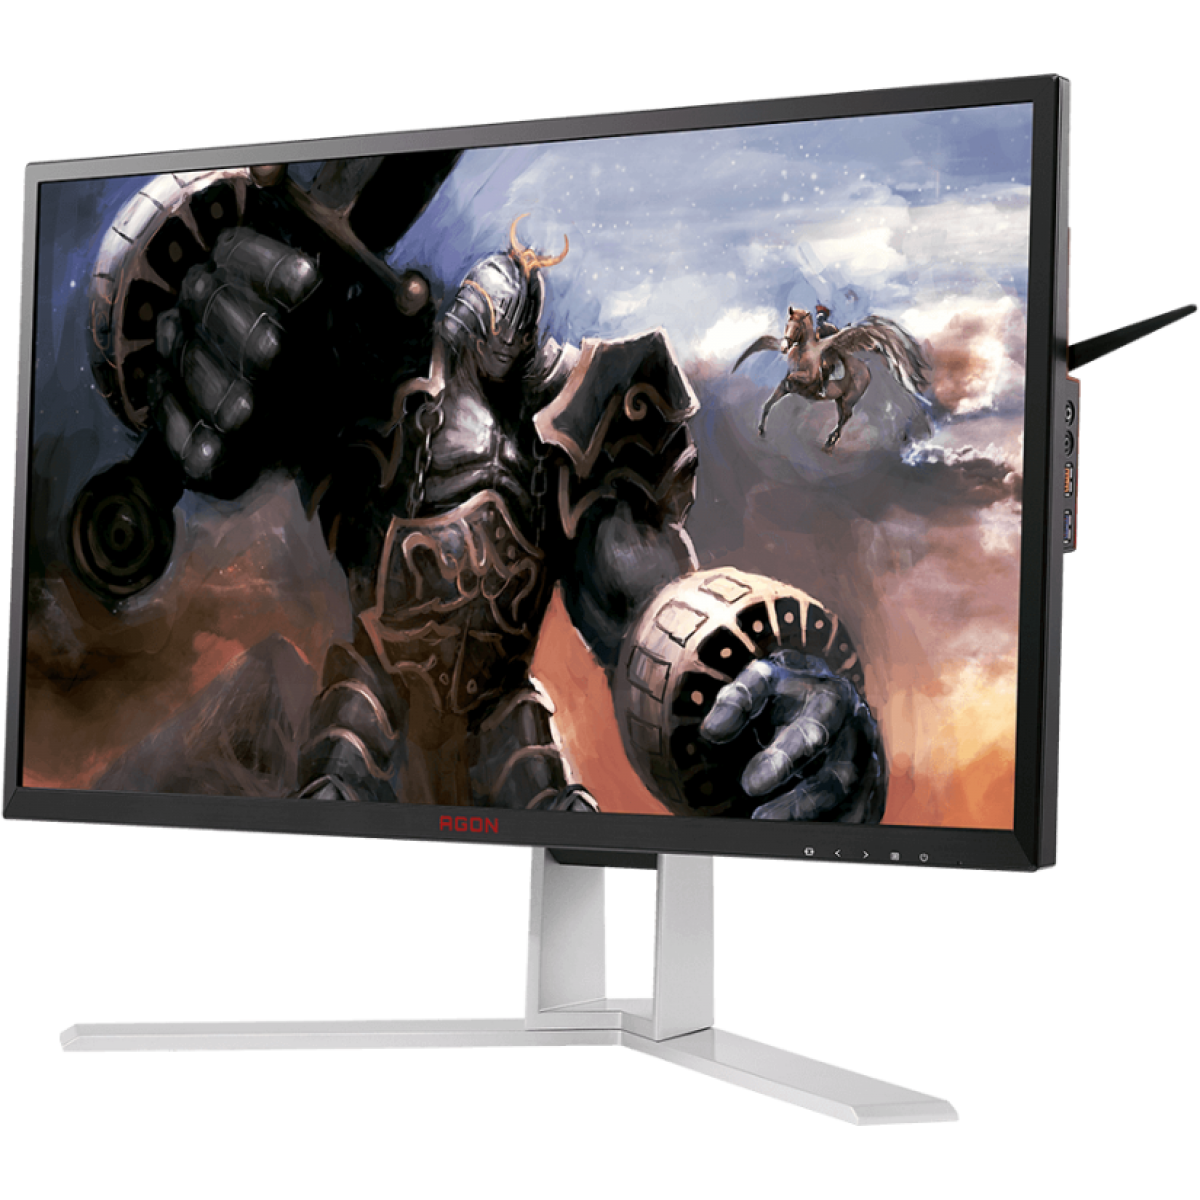 Monitor Gamer AOC Agon, 25 Pol, 240Hz, 0.5ms, AMD FreeSync, HDMI, Display Port, AG251FZ2